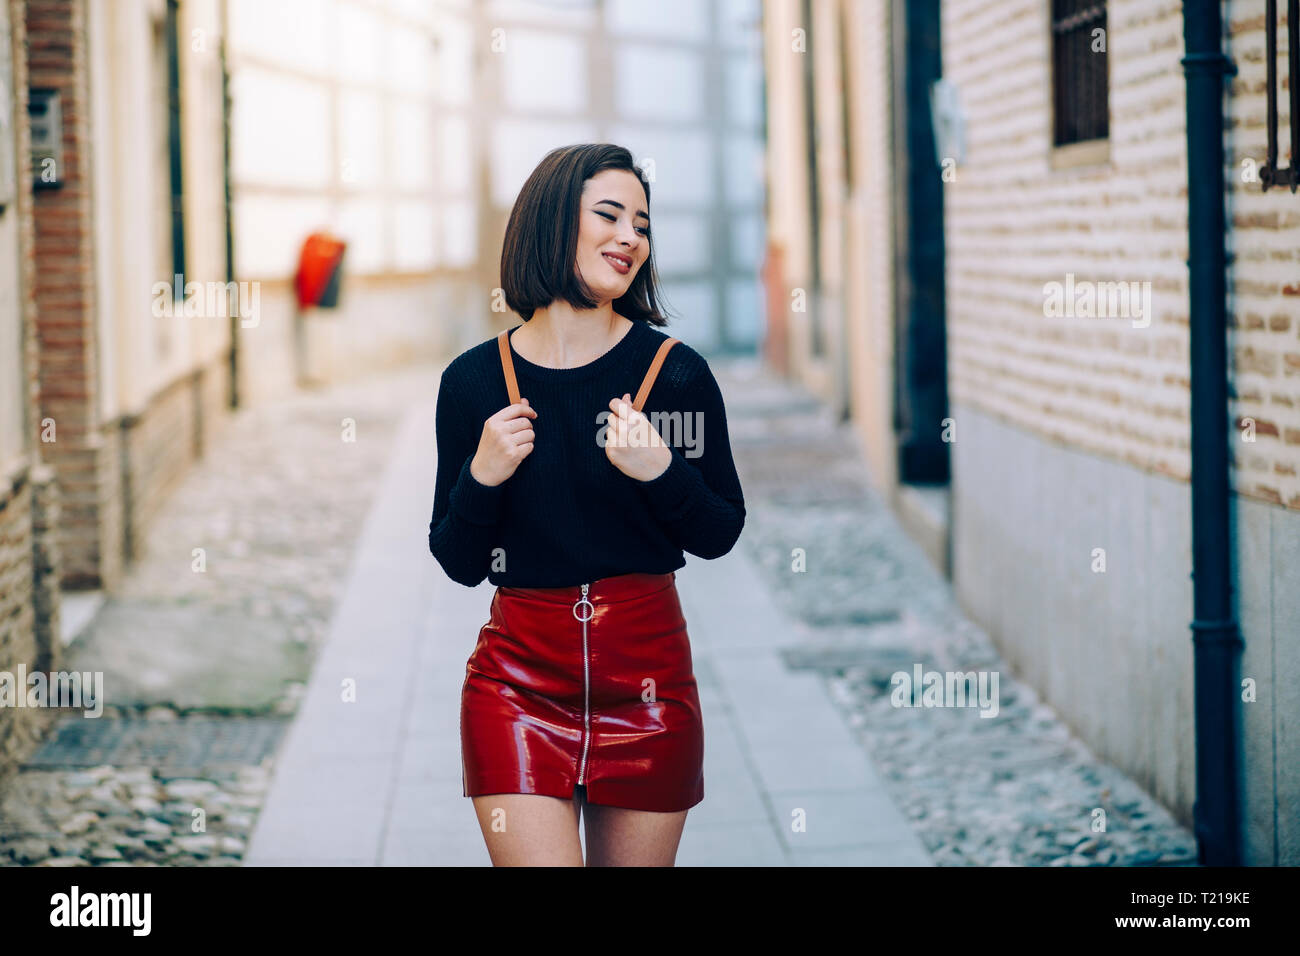 9ea1d75fe Portrait of young woman wearing red patent leather skirt with zipper -  Stock Image